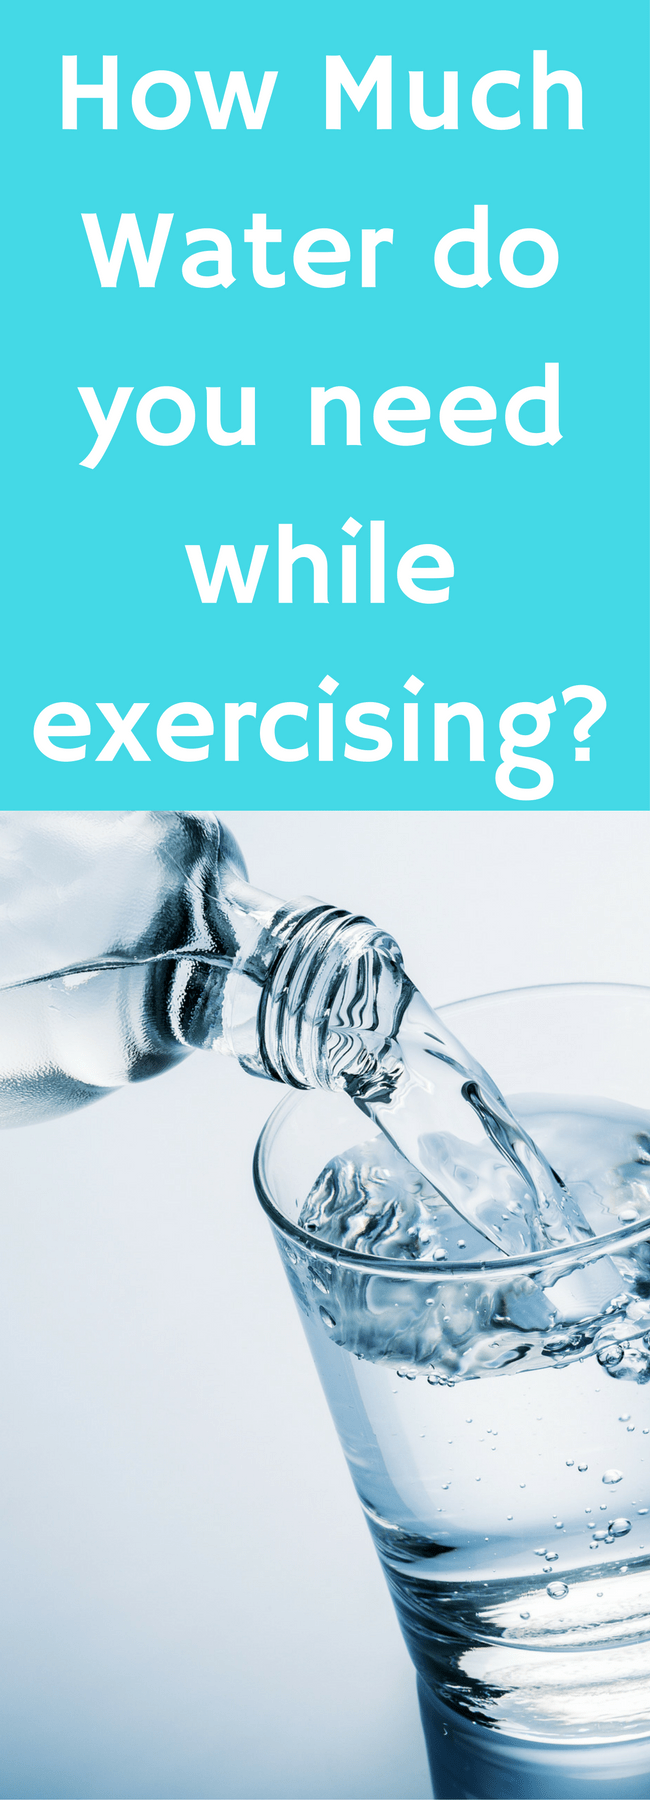 Water / Exercising / Exercise / Healthy Living / Exercise Tips via @clarkscondensed